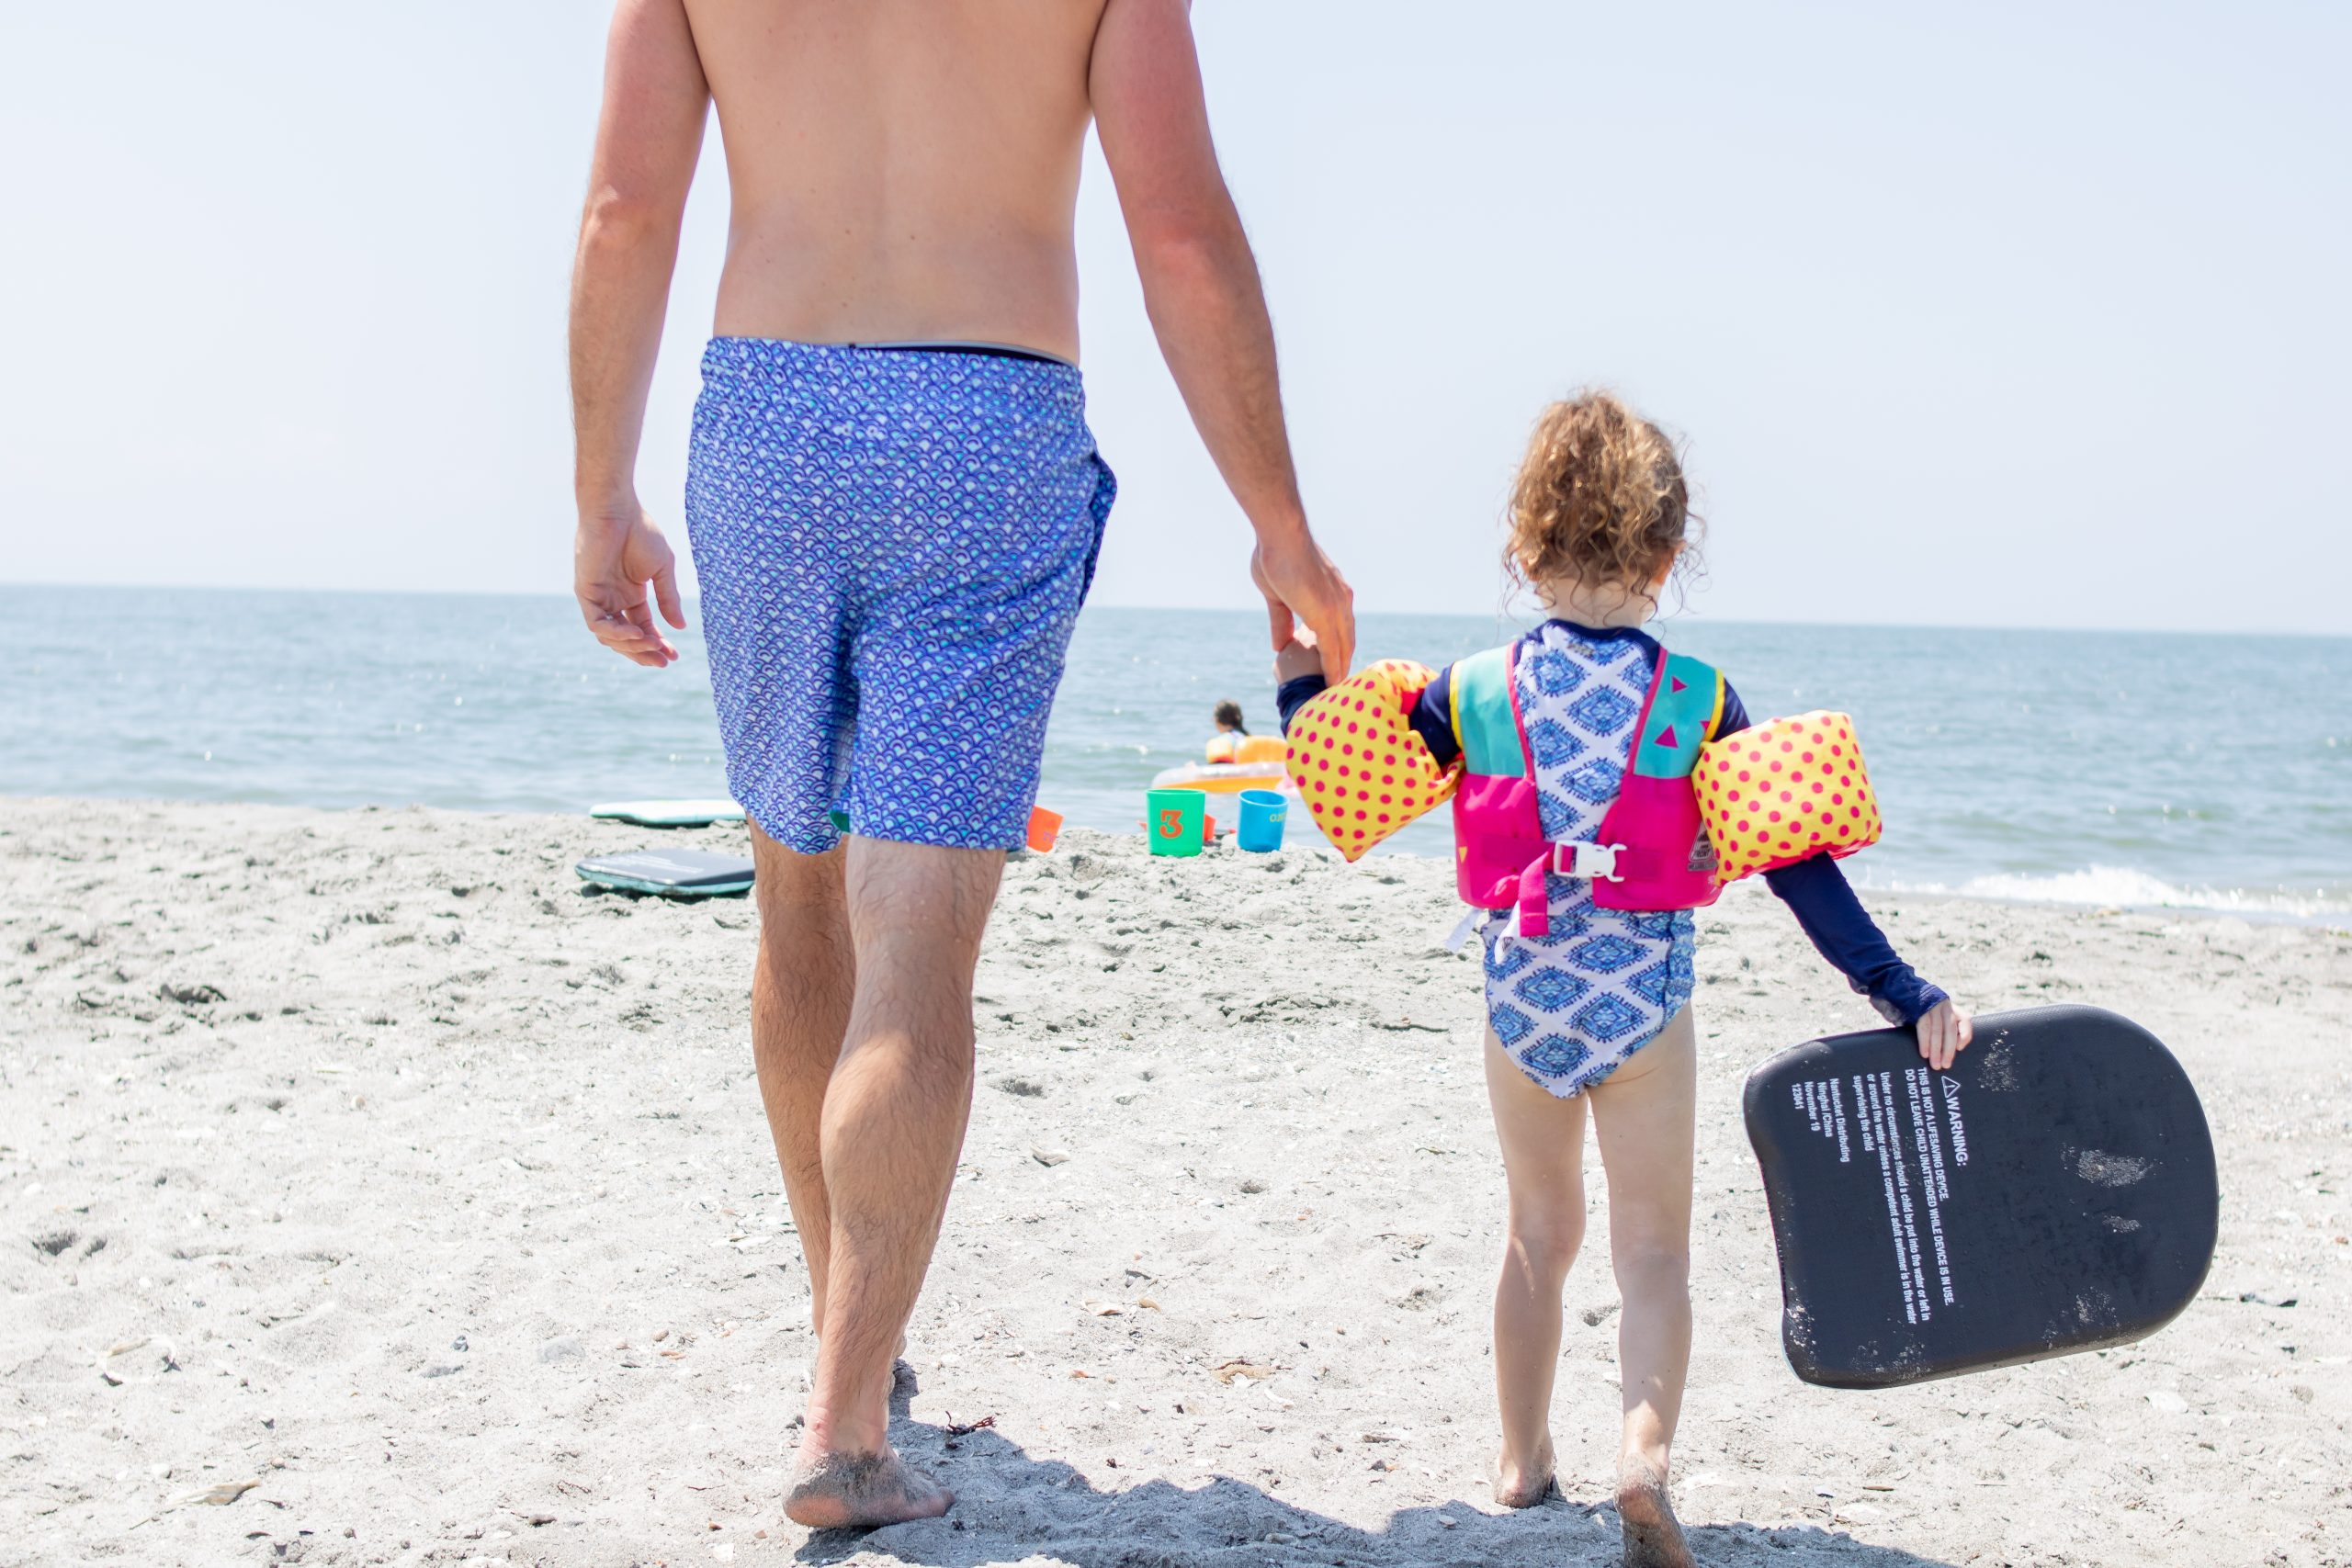 Dad and Daughter walking on the beach in July in matching swimsuits